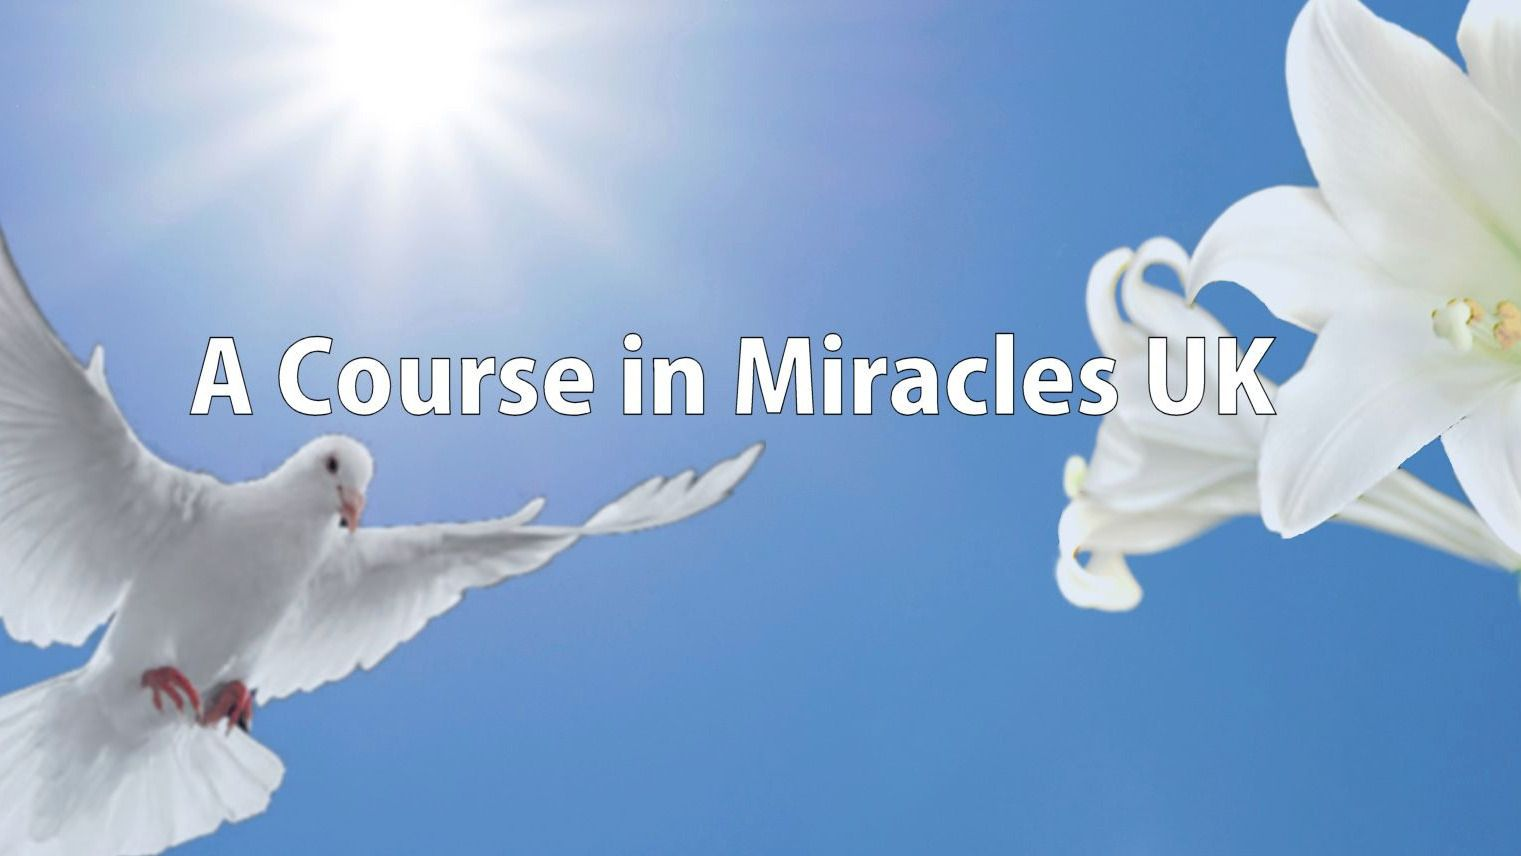 A Course in Miracles UK